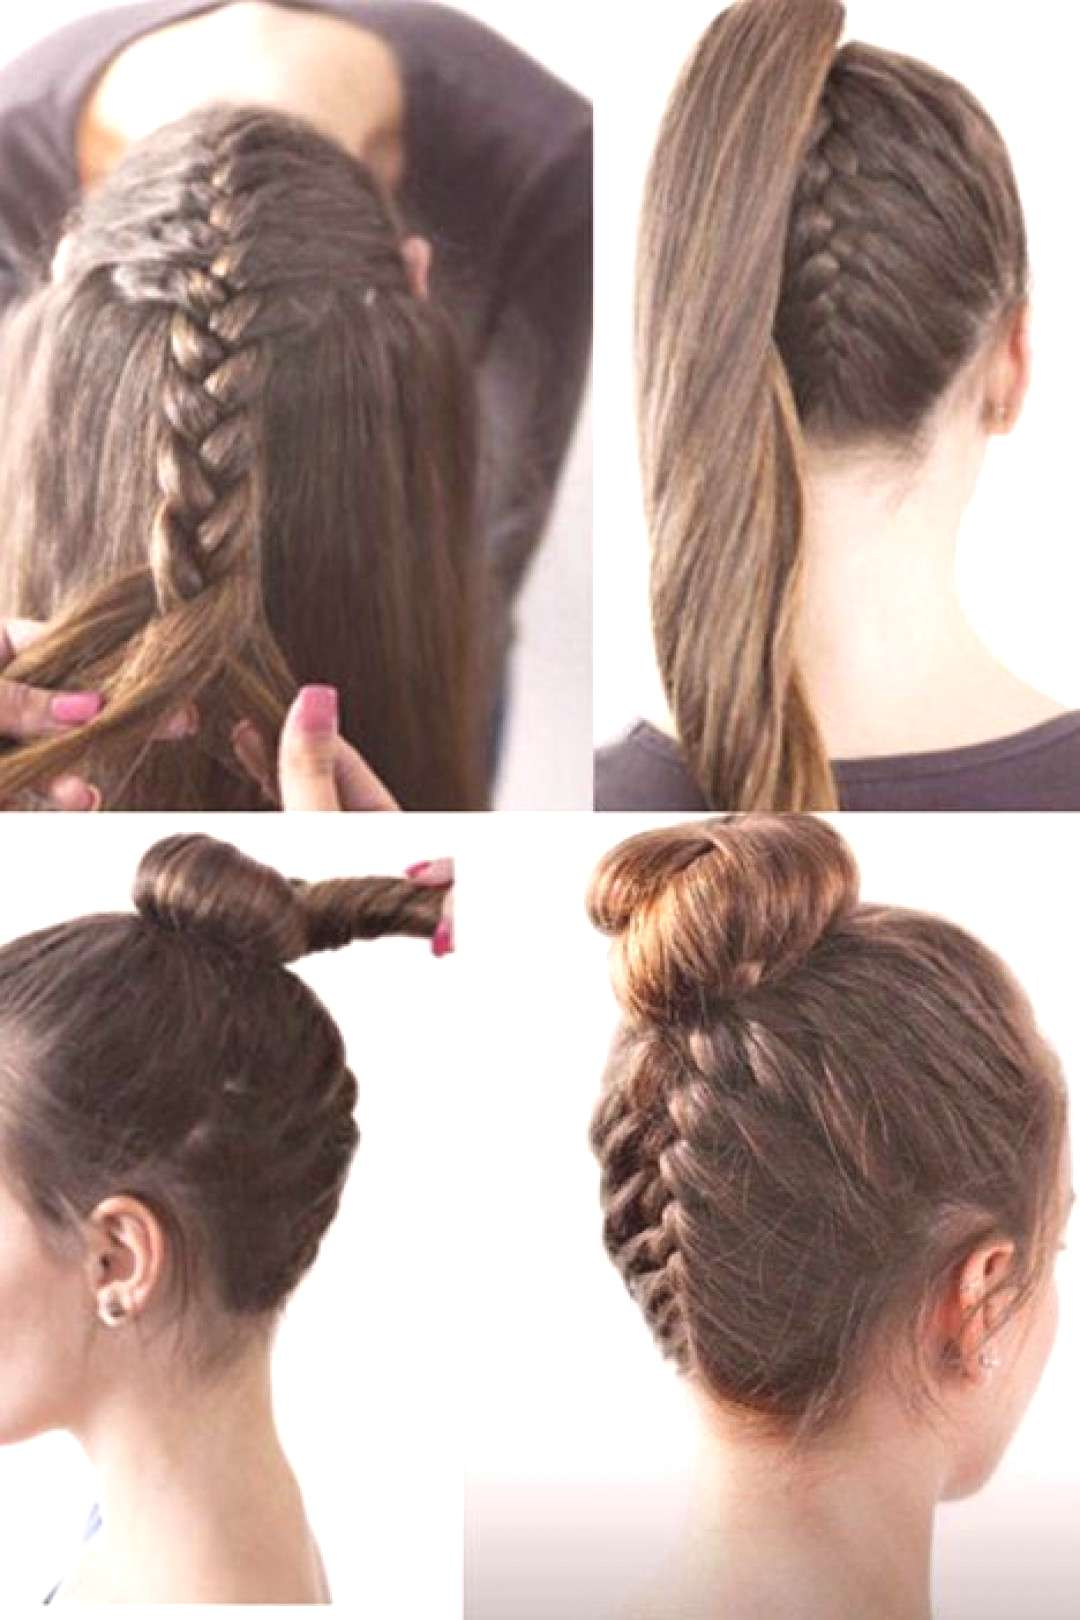 Simple hairstyles for Christmas StylishCircle Germany#christmas